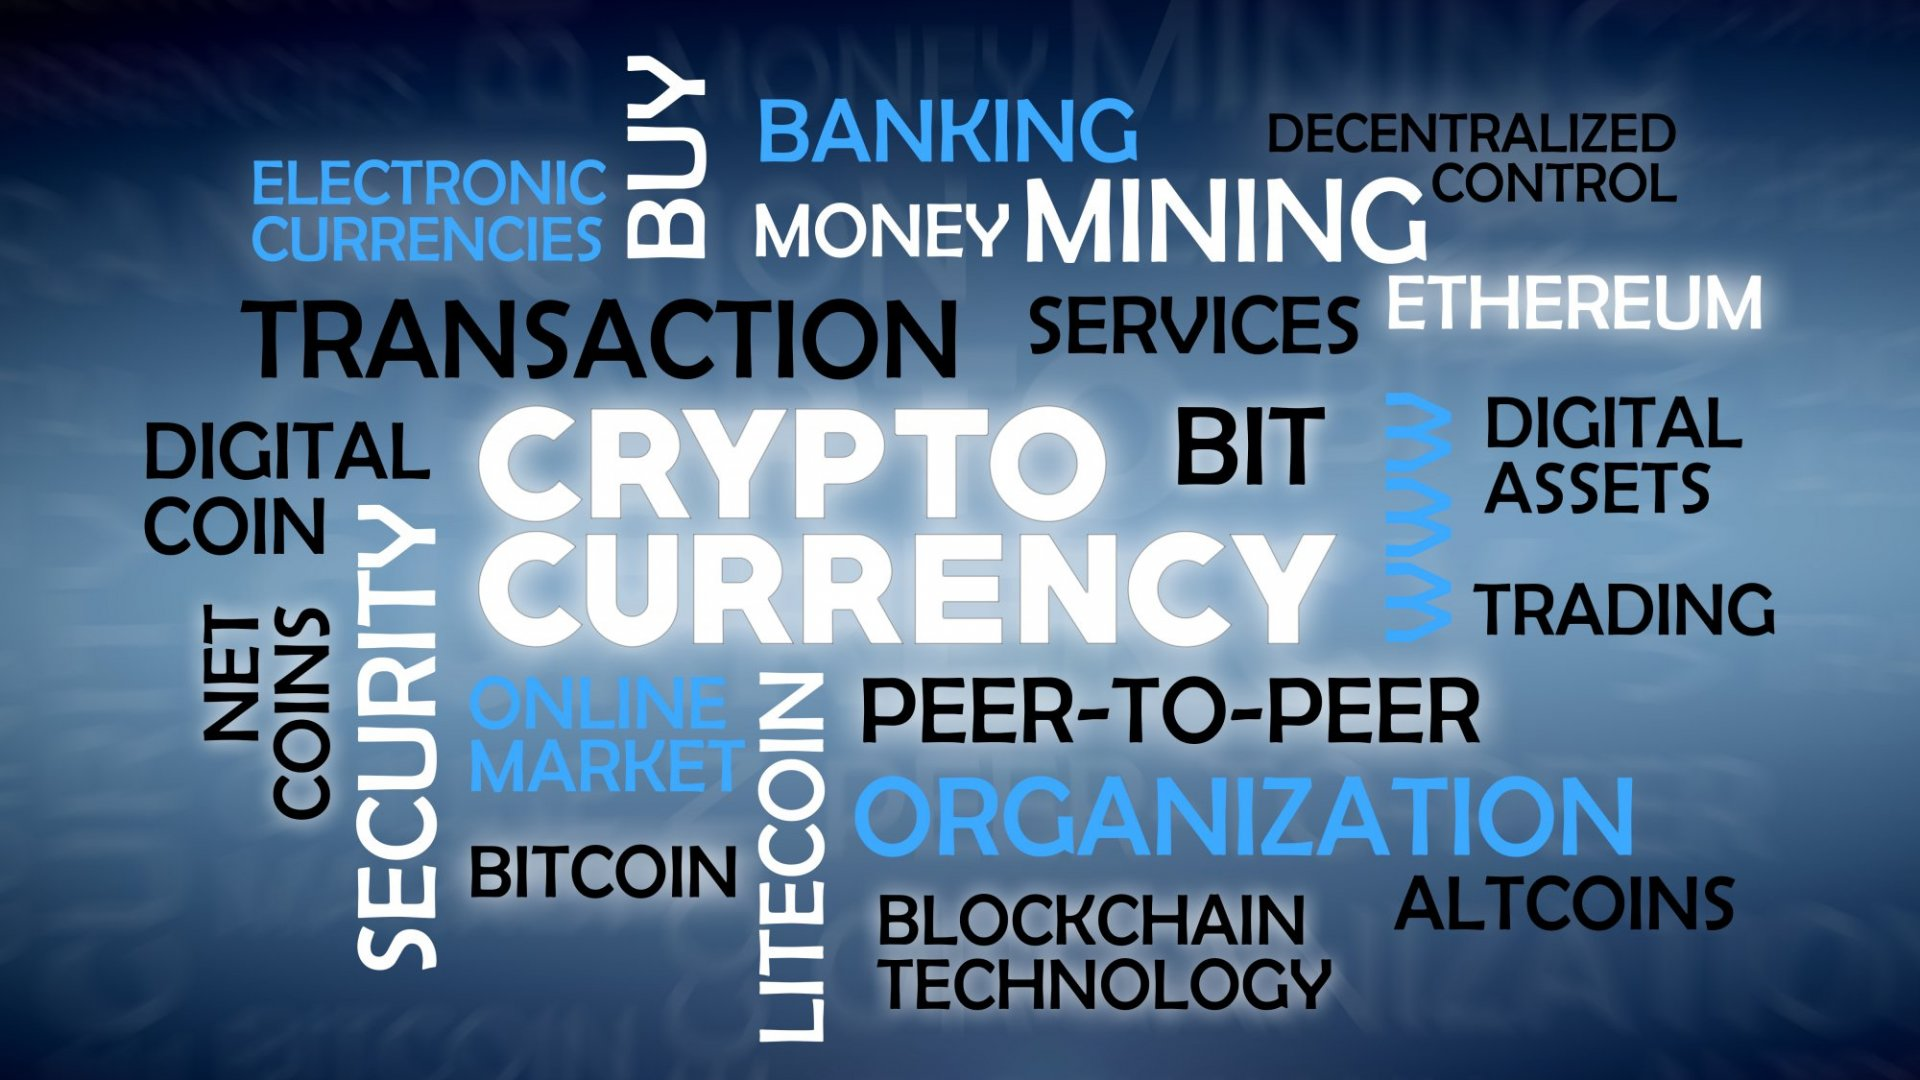 Cryptocurrency technology in education single manning in betting shops uk